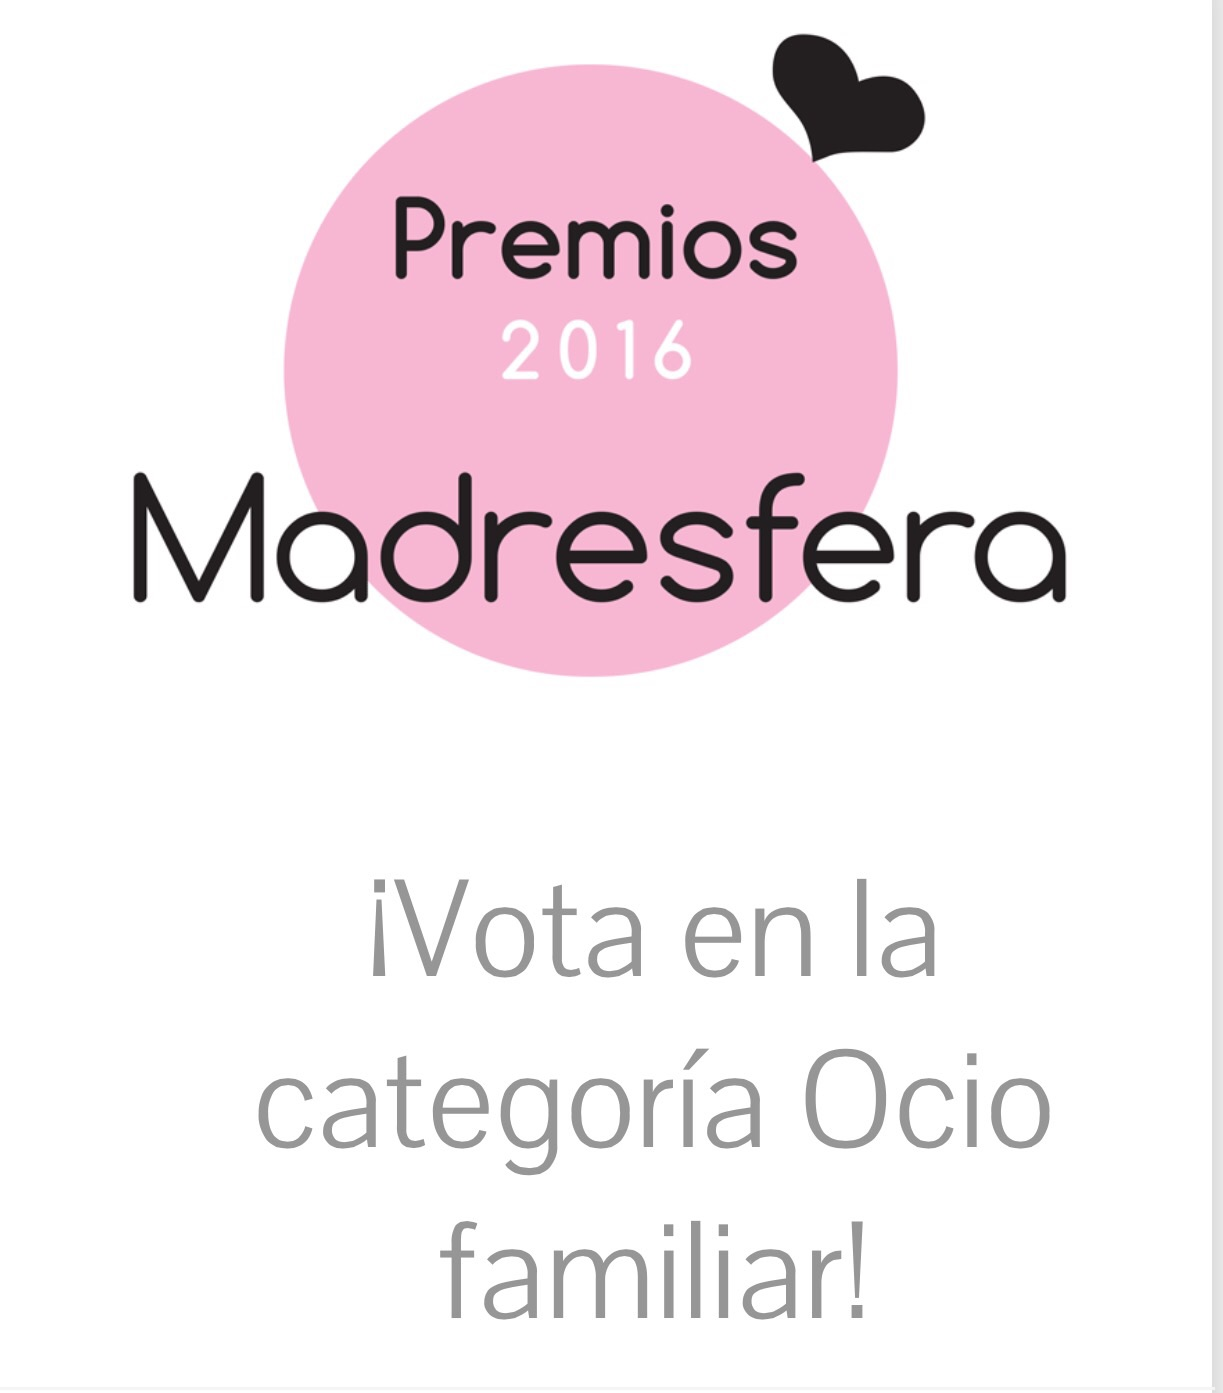 Sweet Ale nominado al mejor blog de Ocio Familiar – Premios Madresfera